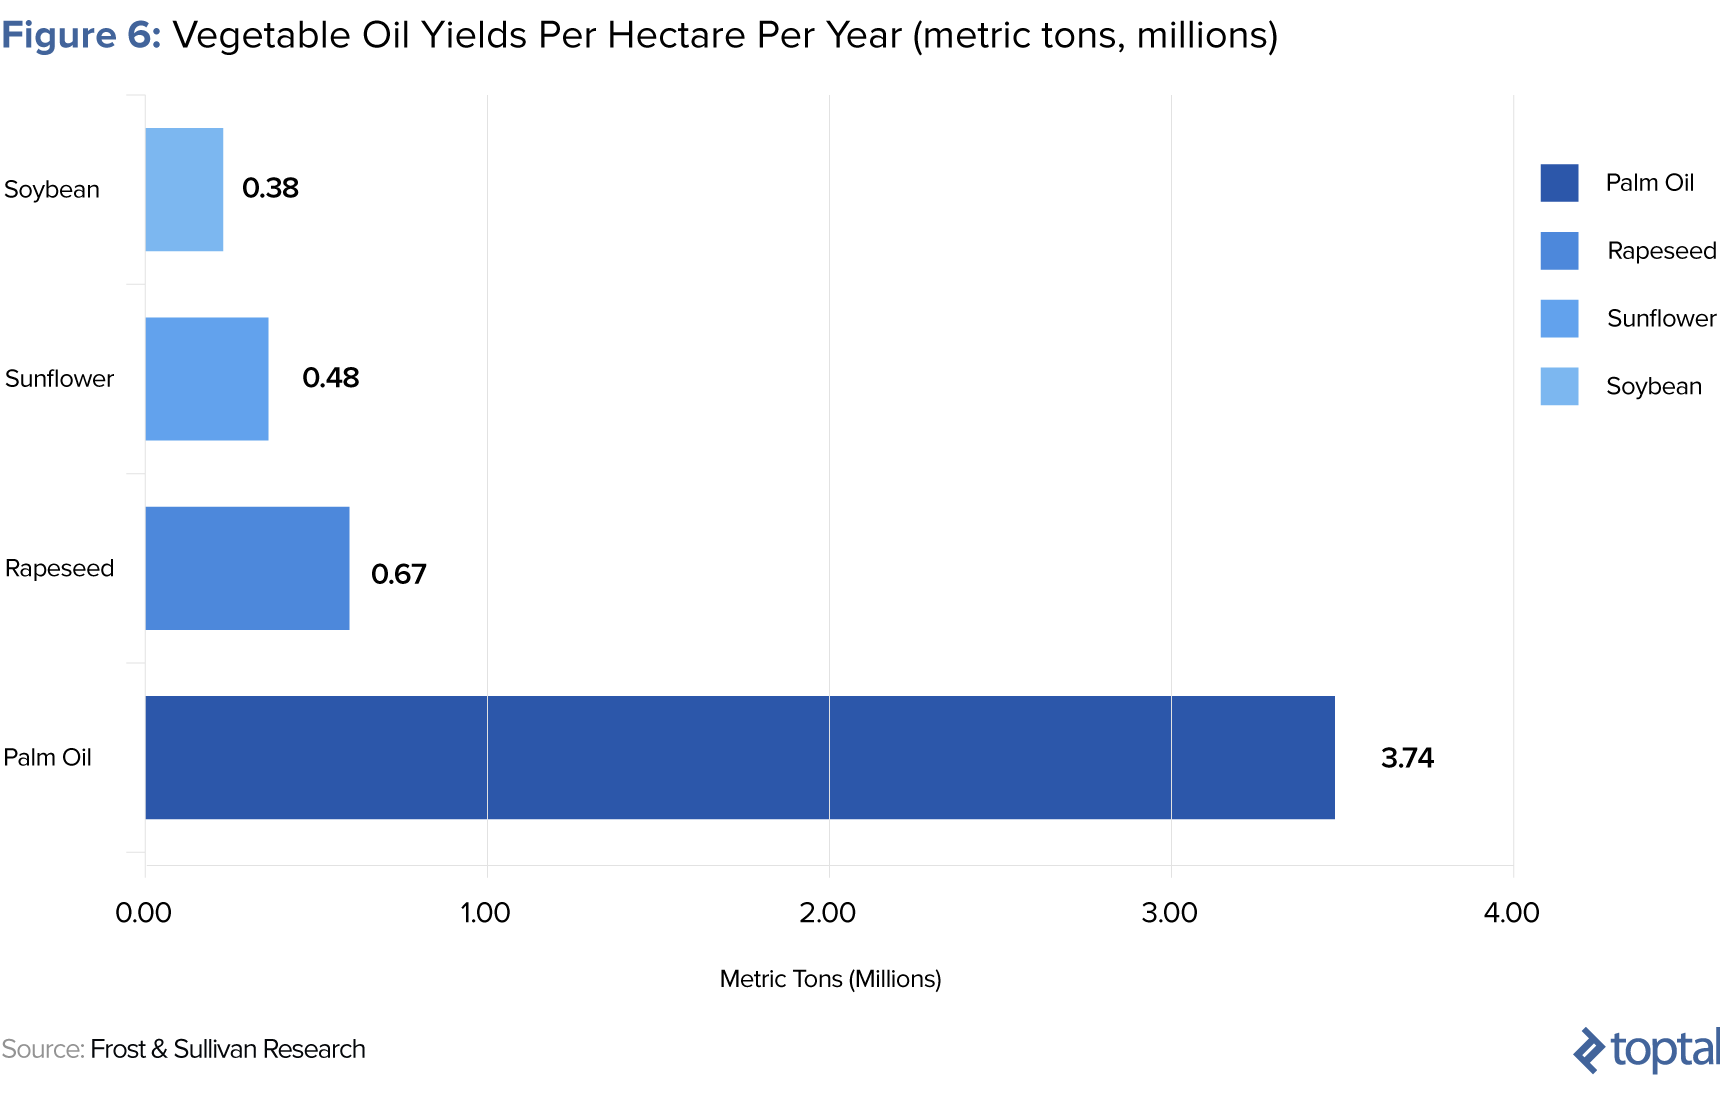 Figure 6: Vegetable Oil Yields per Hectare per Year, in millions of metric tons